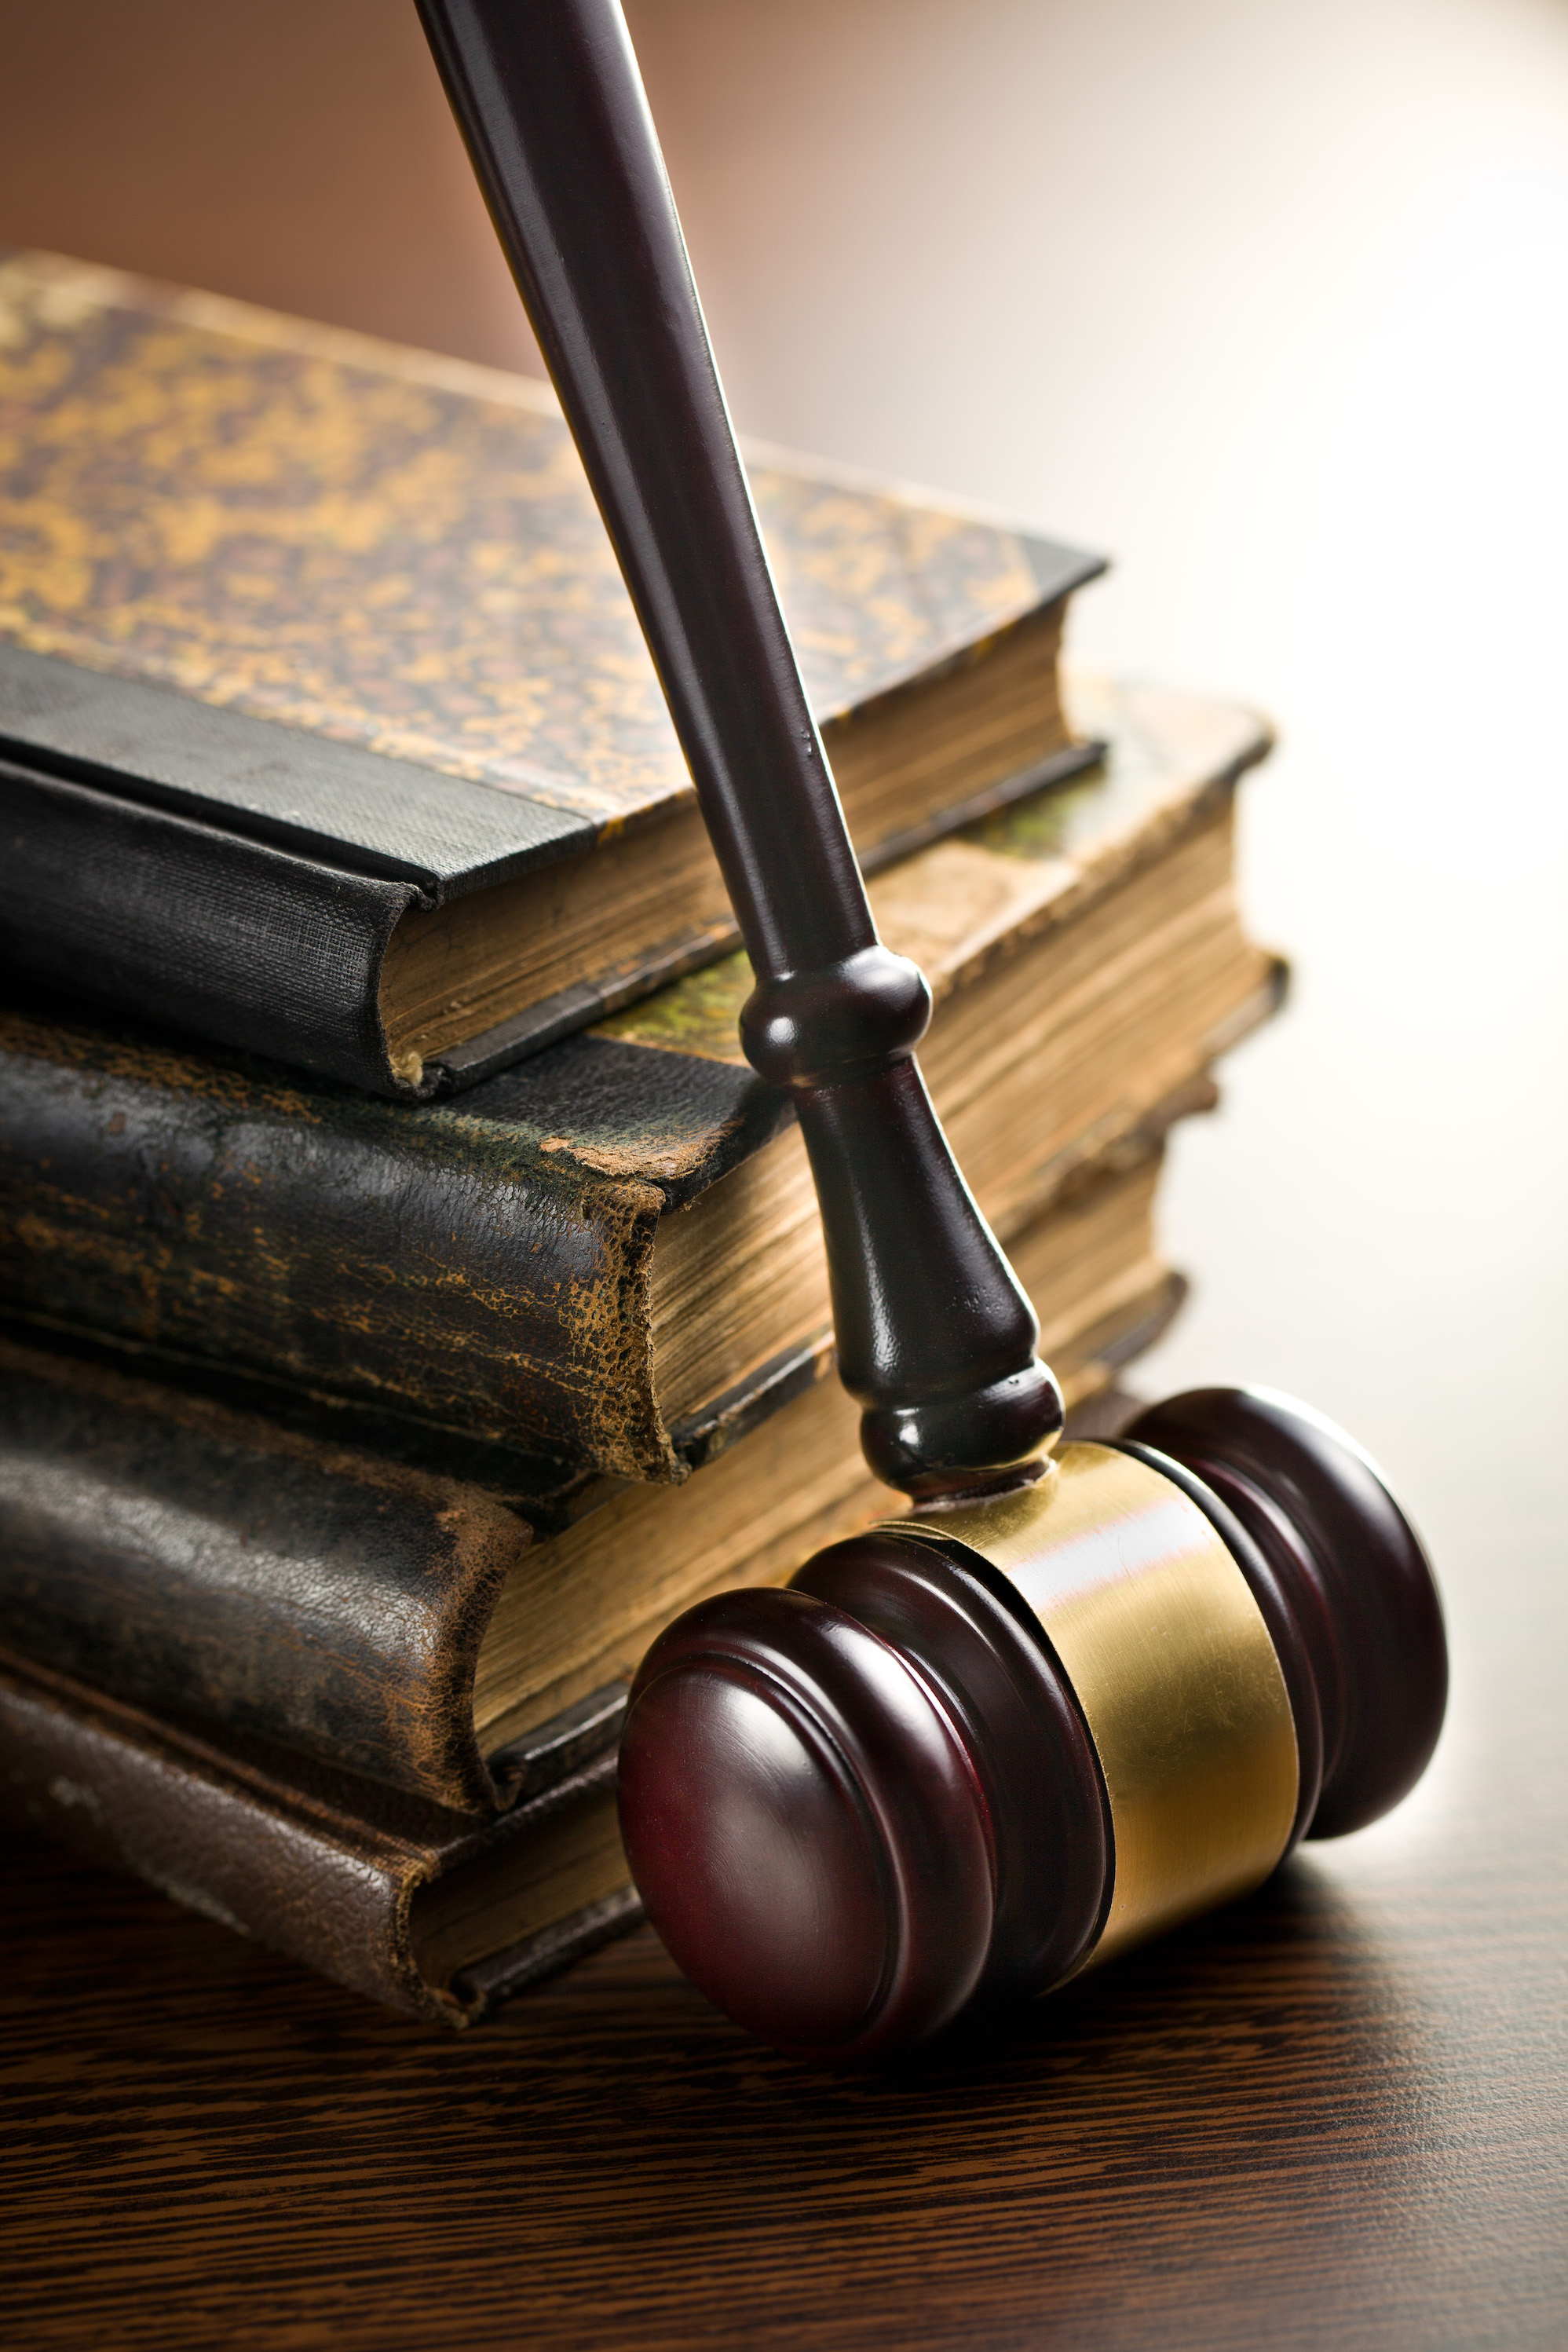 judge gavel with old books